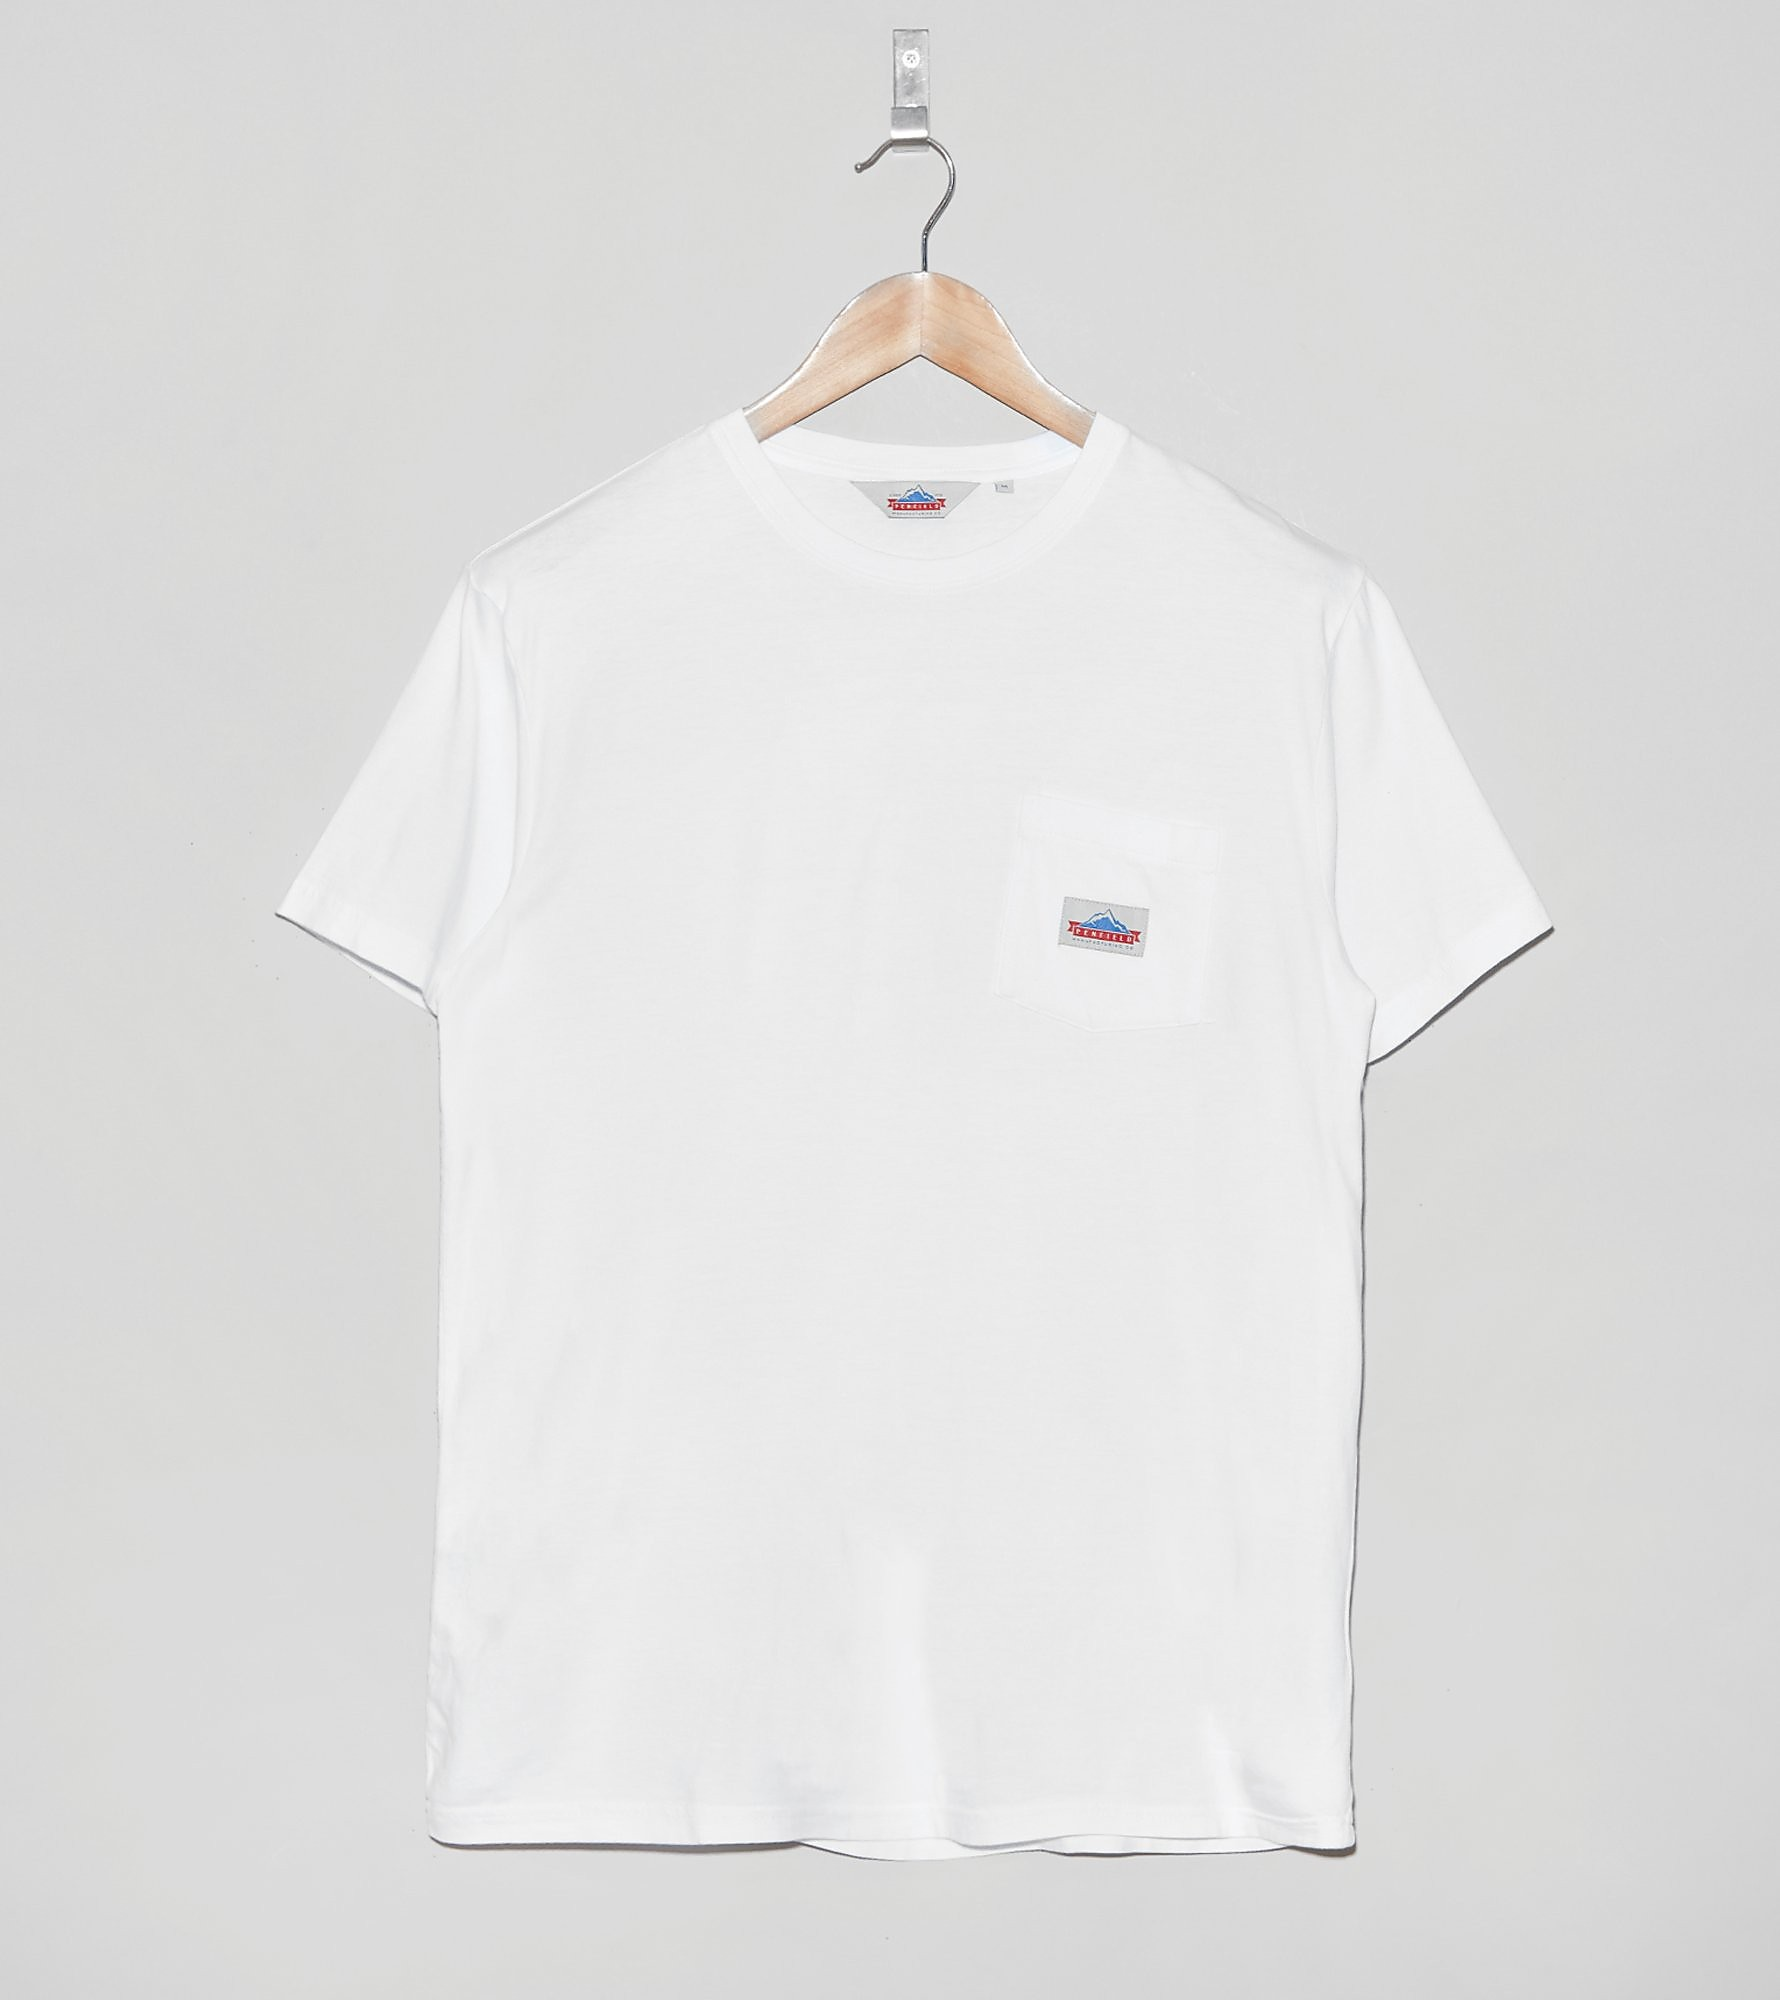 Penfield Label T-Shirt